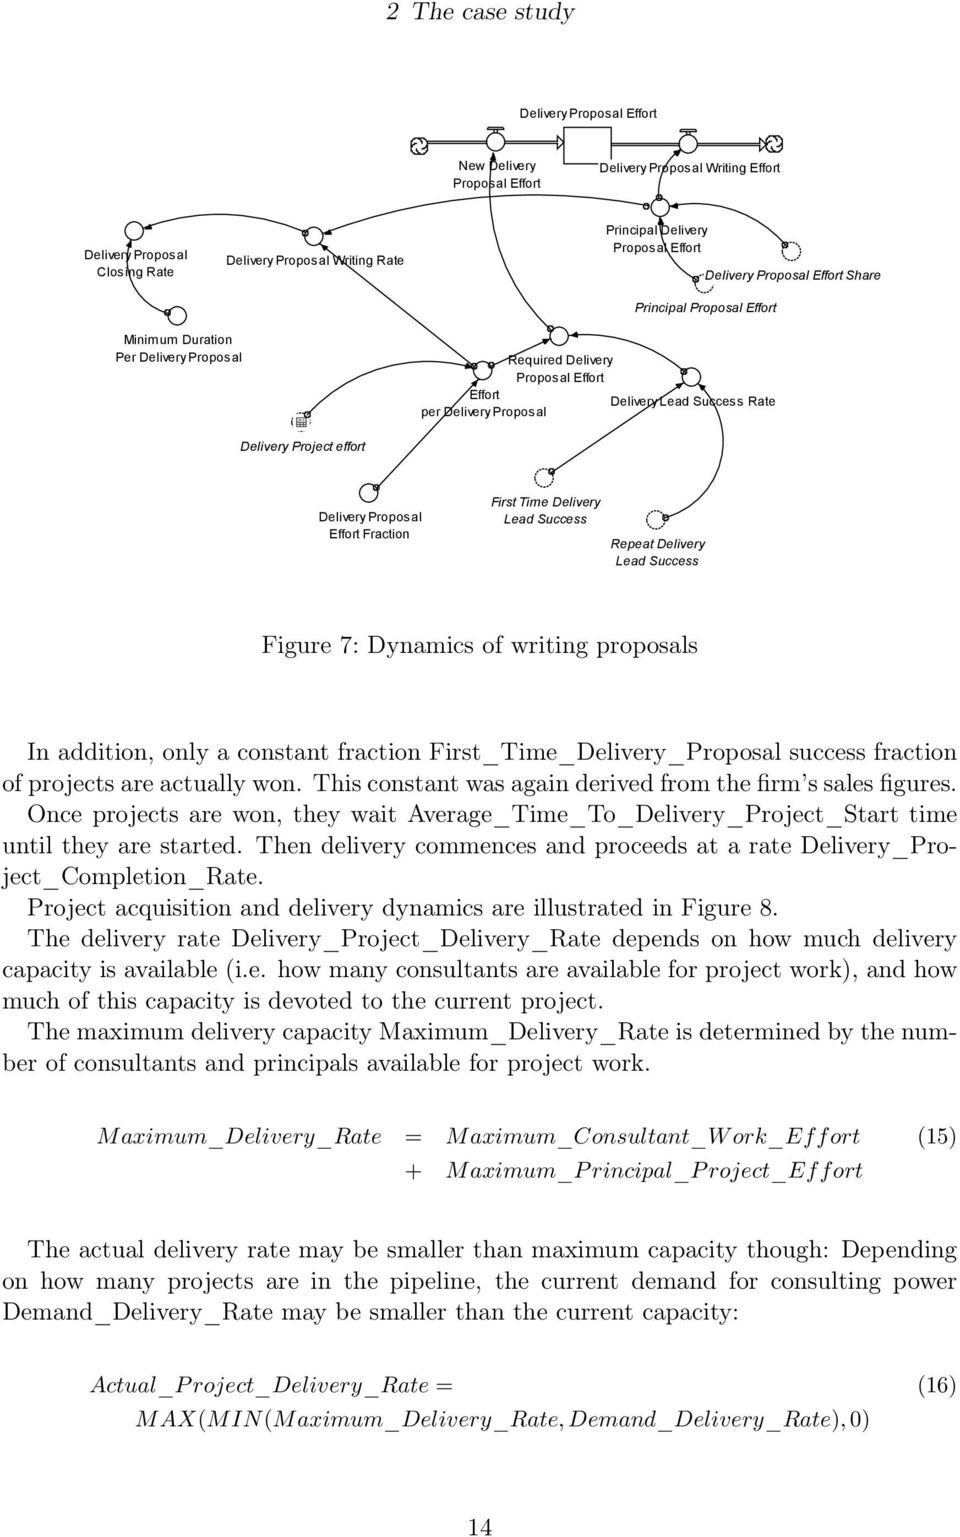 effort Delivery Proposal Effort Fraction First Time Delivery Lead Success Repeat Delivery Lead Success Figure 7: Dynamics of writing proposals In addition, only a constant fraction